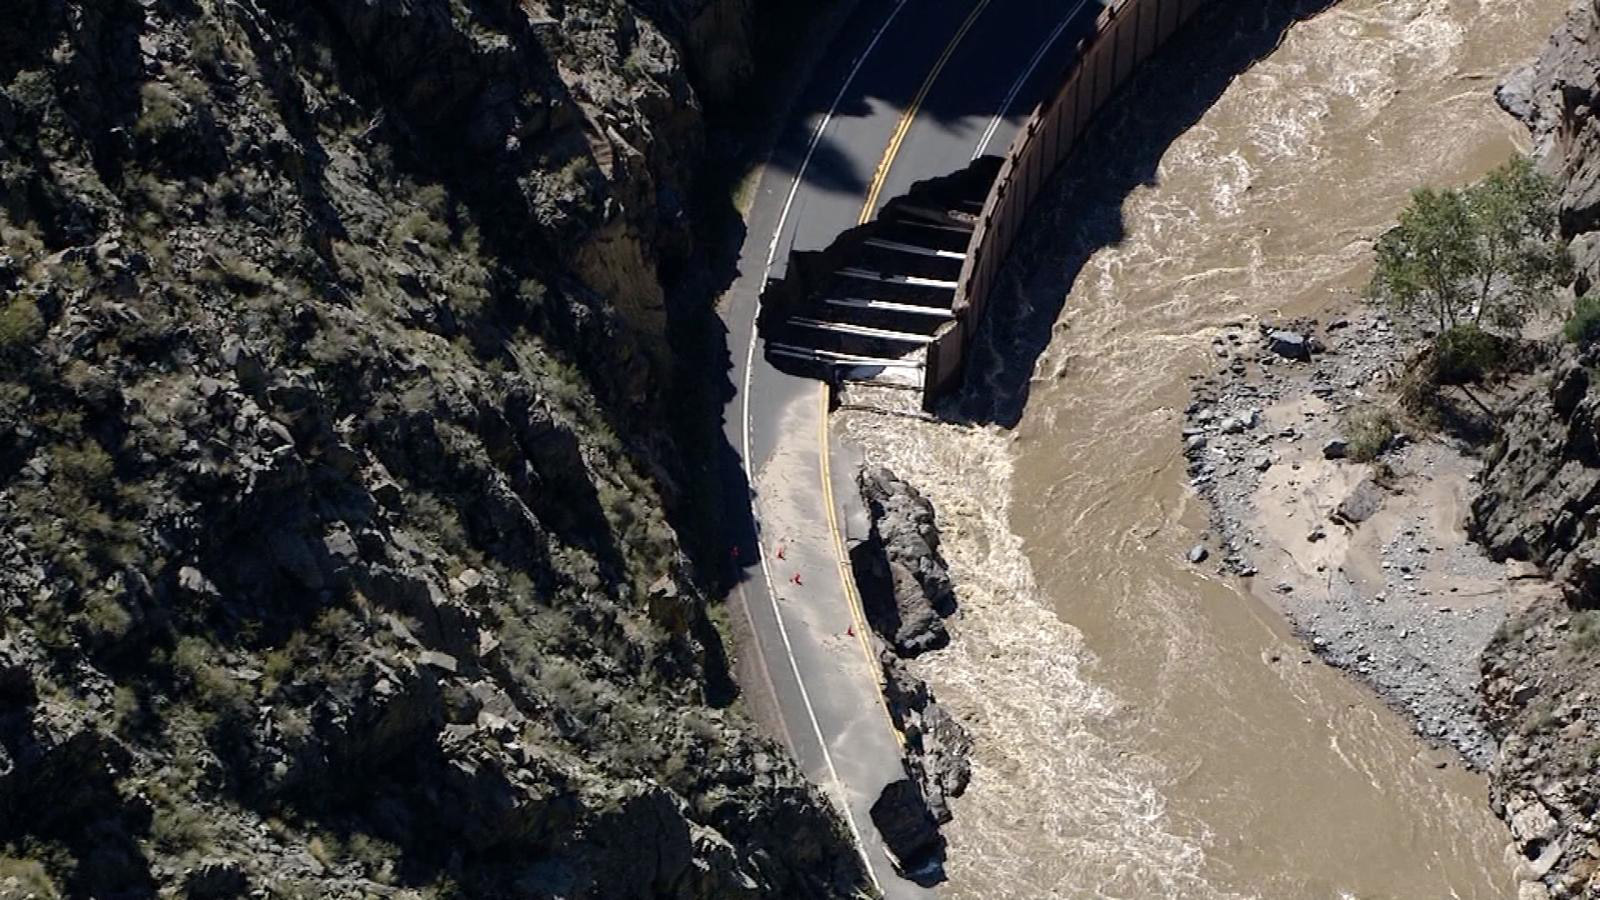 Copter4 flew over Highway 34 in the Big Thompson Canyon after it was damaged in the Sept. 2013 floods. (credit: CBS)